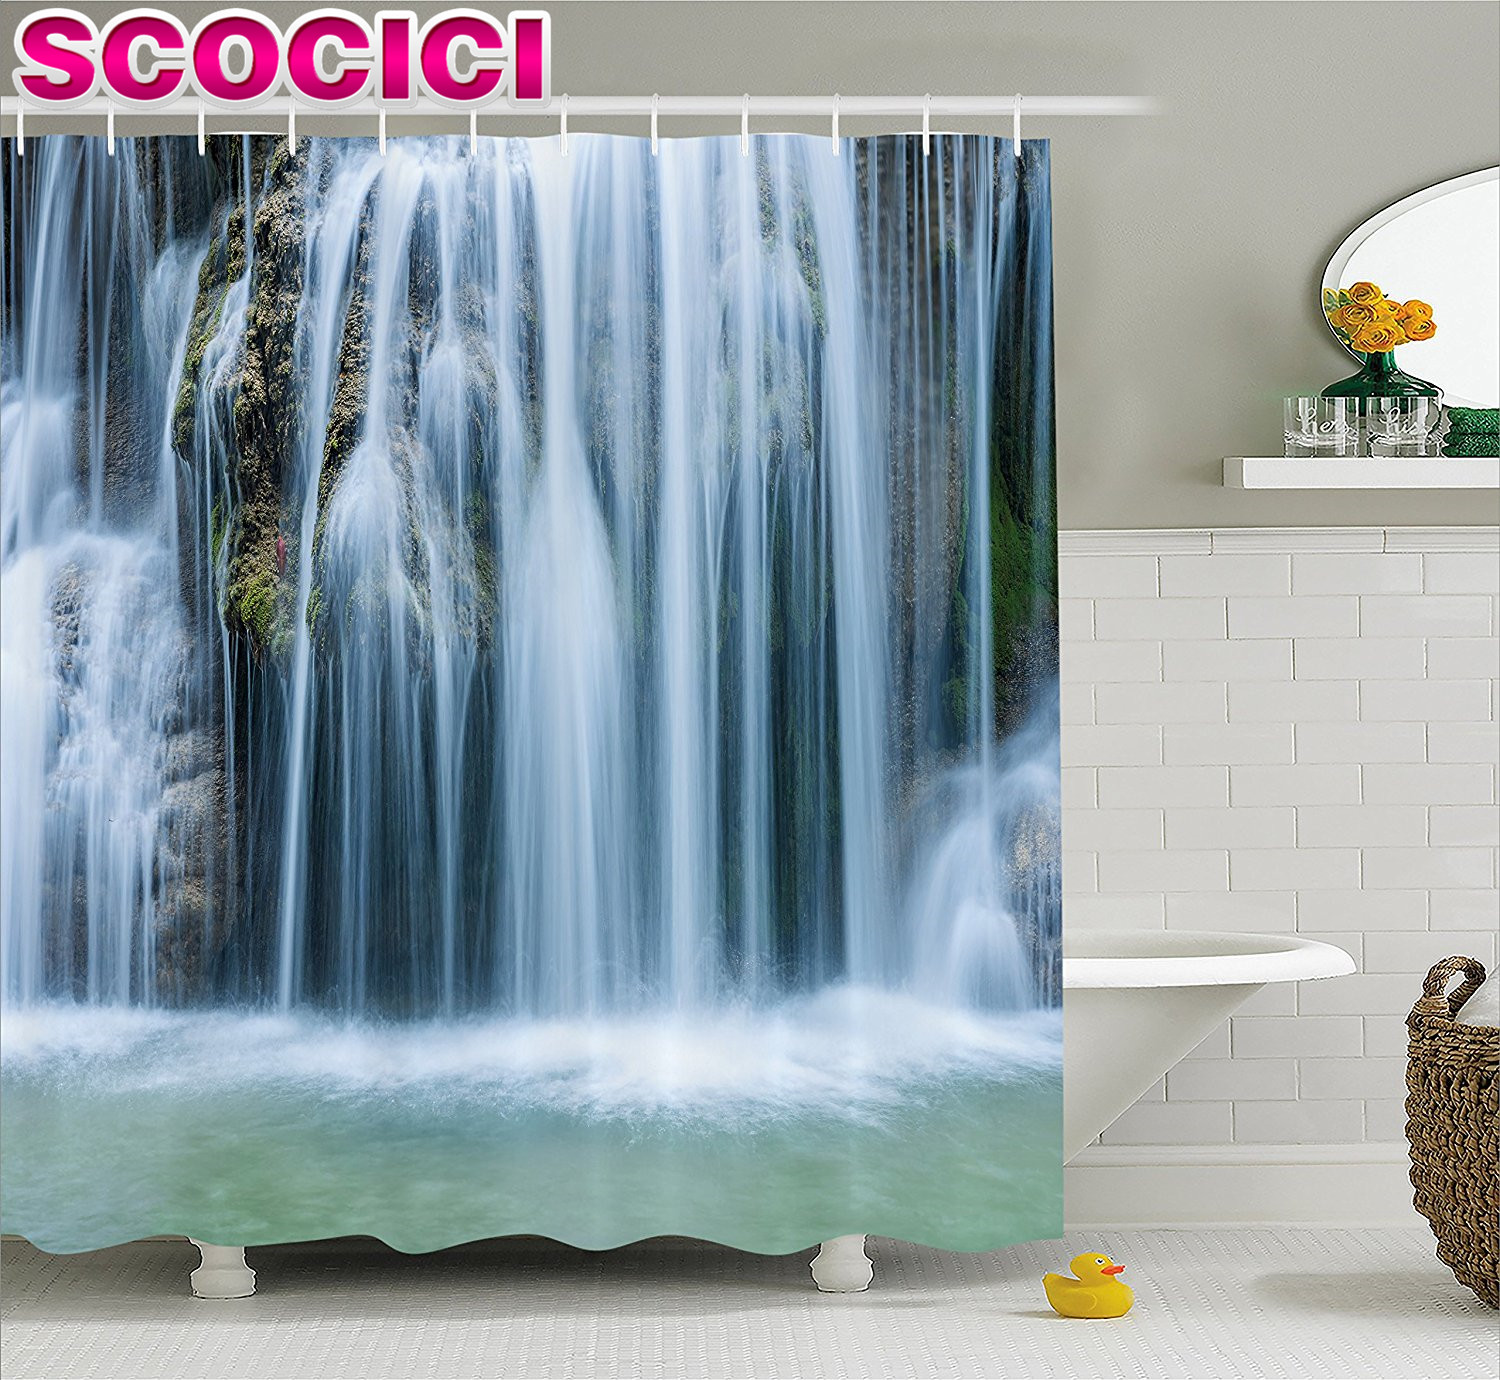 Waterfall Decor Shower Curtain Massive Magnificent Cascaded Waterfall In  Rain Forest With Intense Water Image Fabric Bathroom De